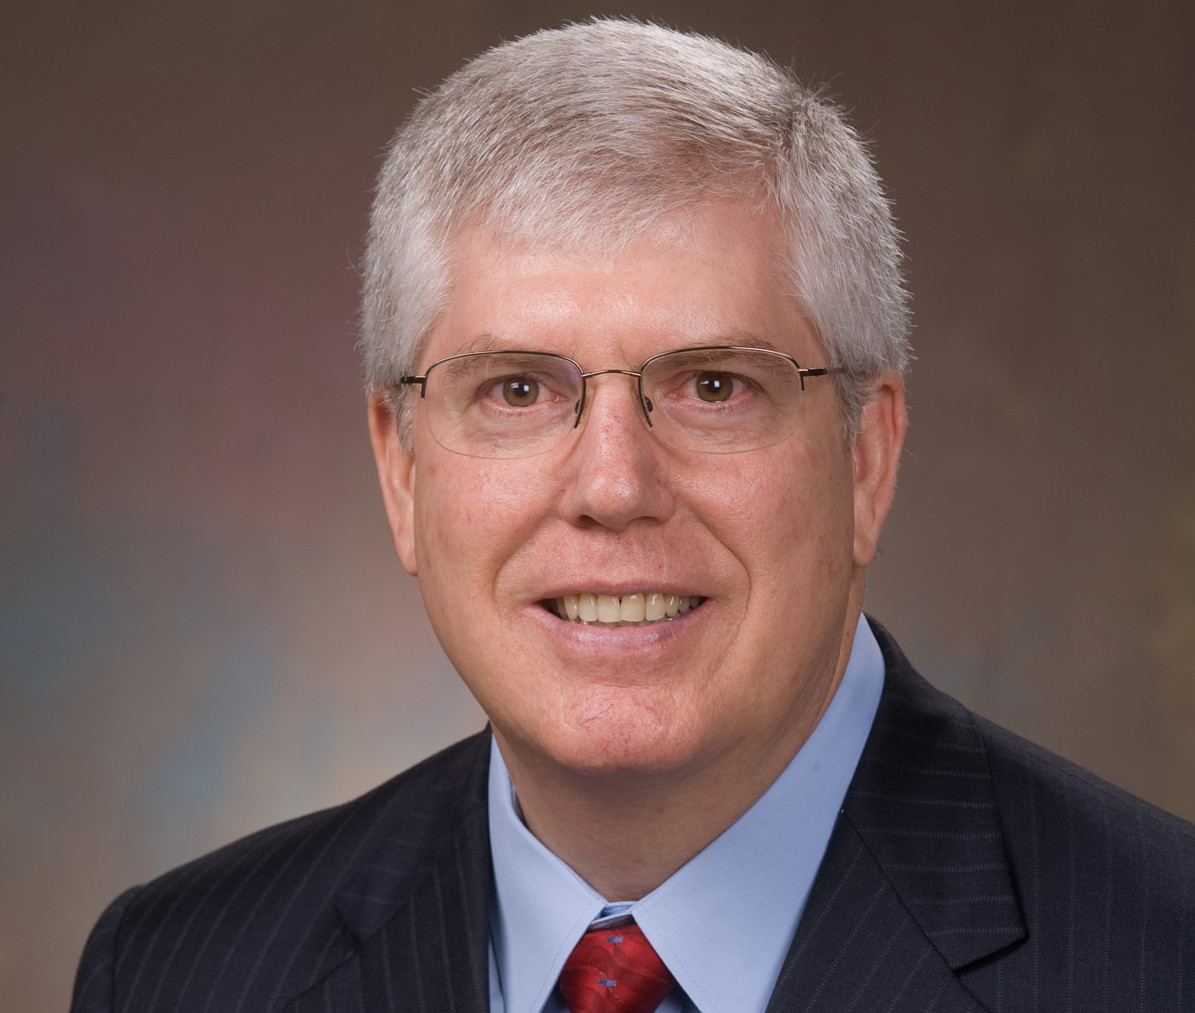 Mat Staver, founder of Liberty Counsel.